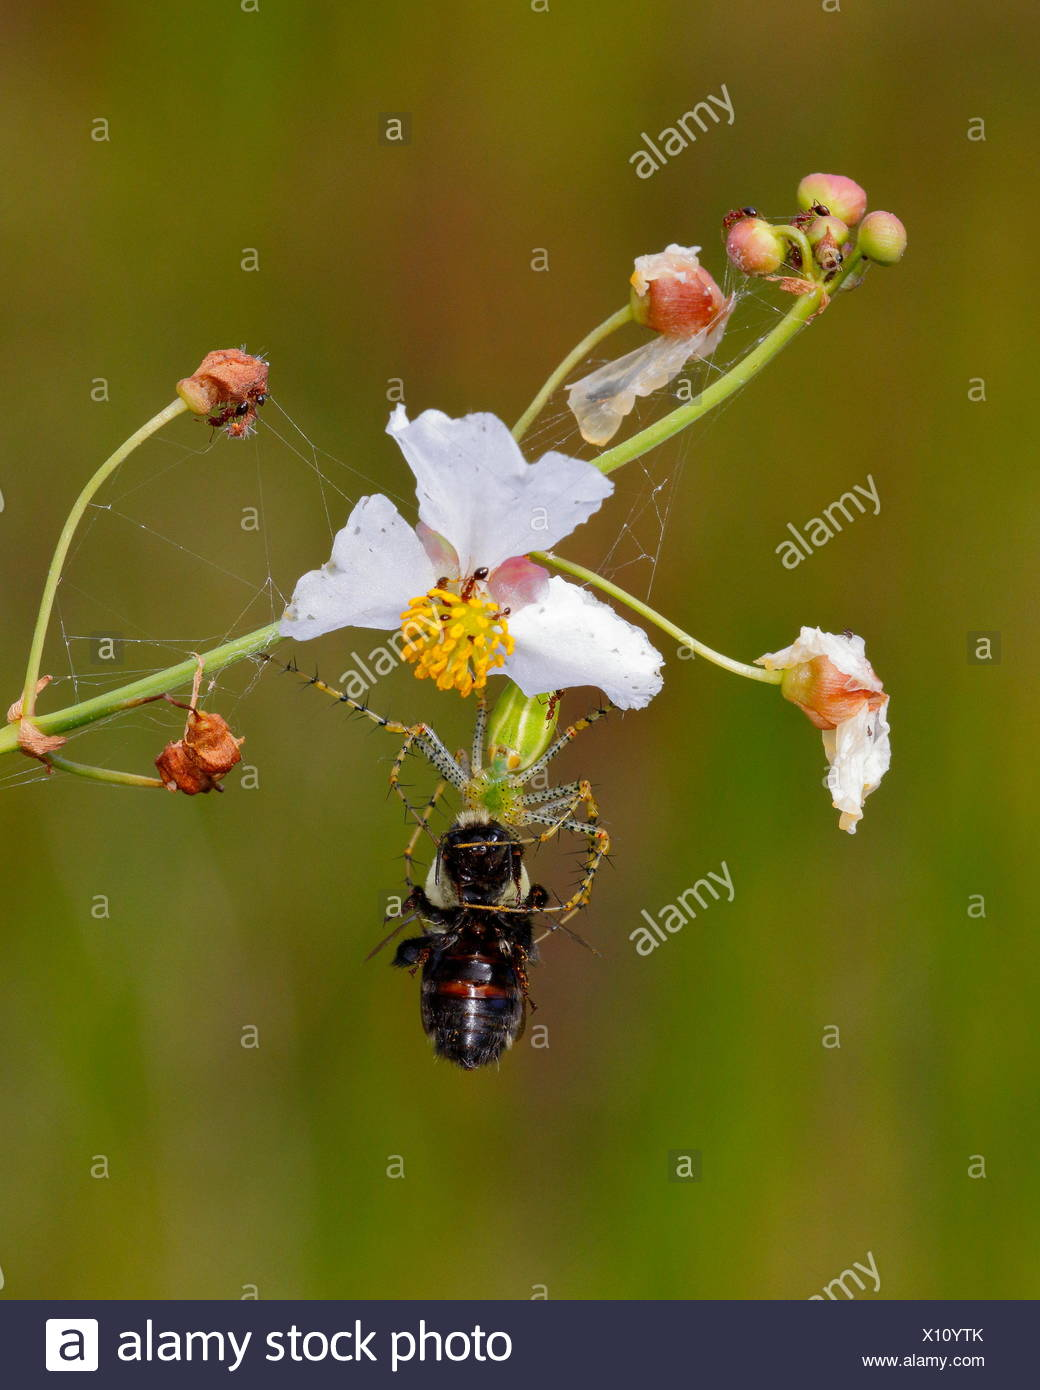 A green lynx spider, Peucetia viridans, preying on a bee. Stock Photo